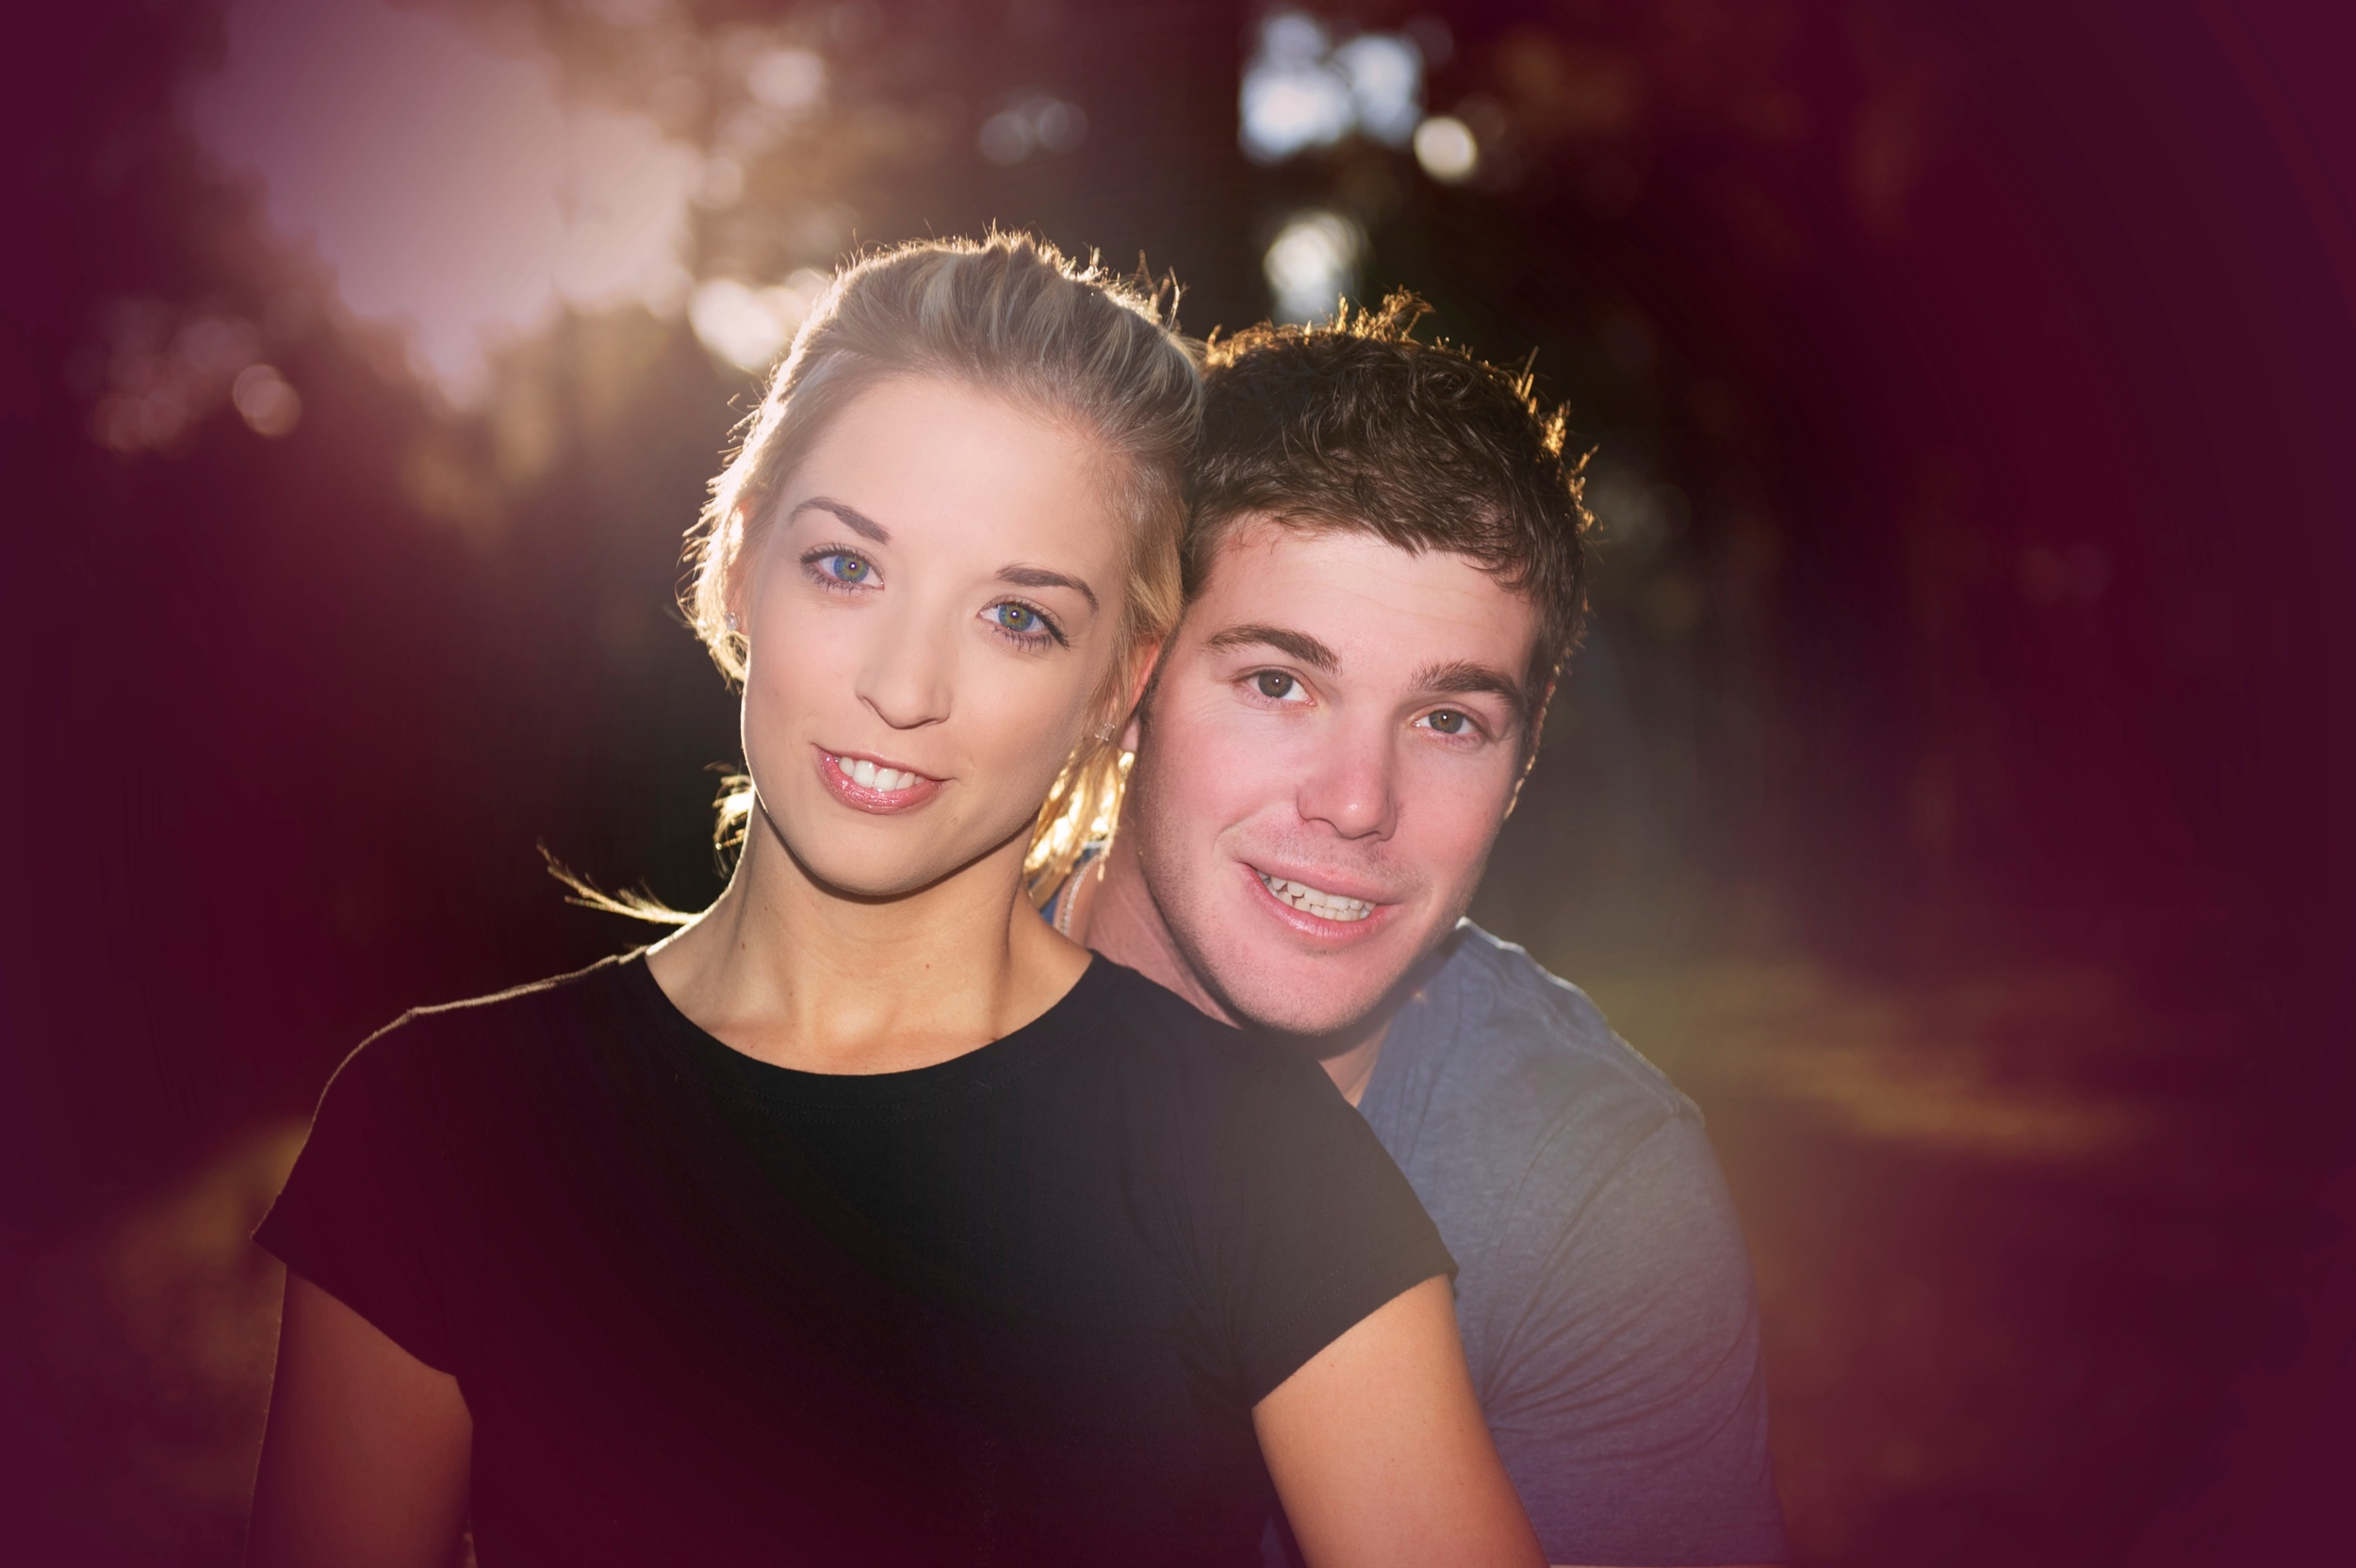 This image shows a very happy couple that will soon be husband and wife